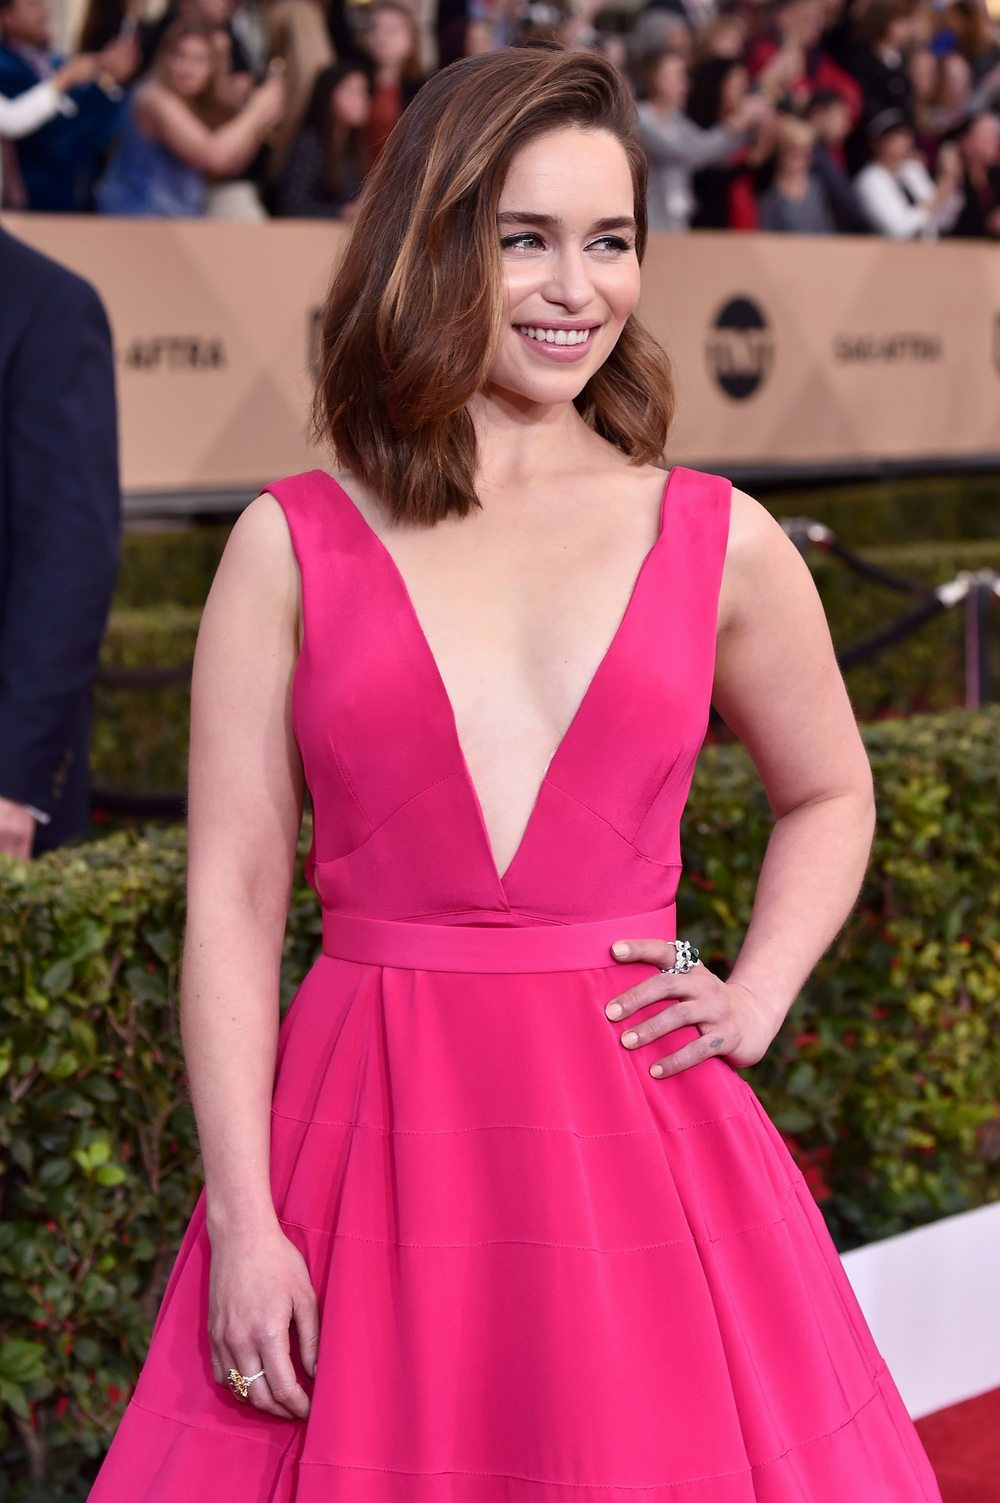 20160130_ECLARKE_SAGAWARDS_JC_KY_MB_05.jpg